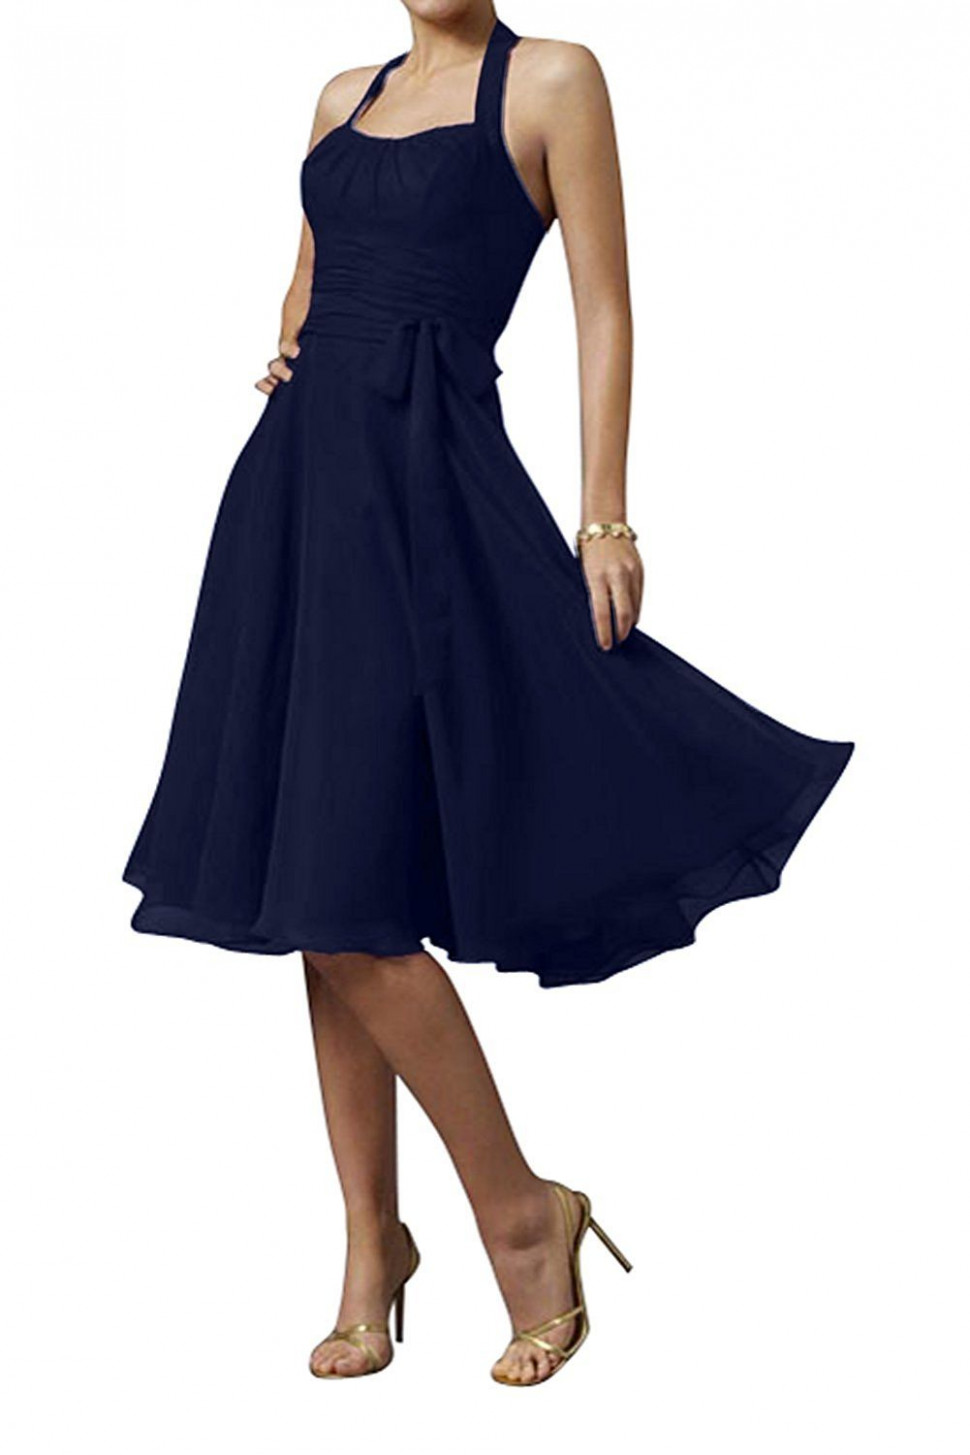 Cocktailkleid Blau Amazon - Abendkleider